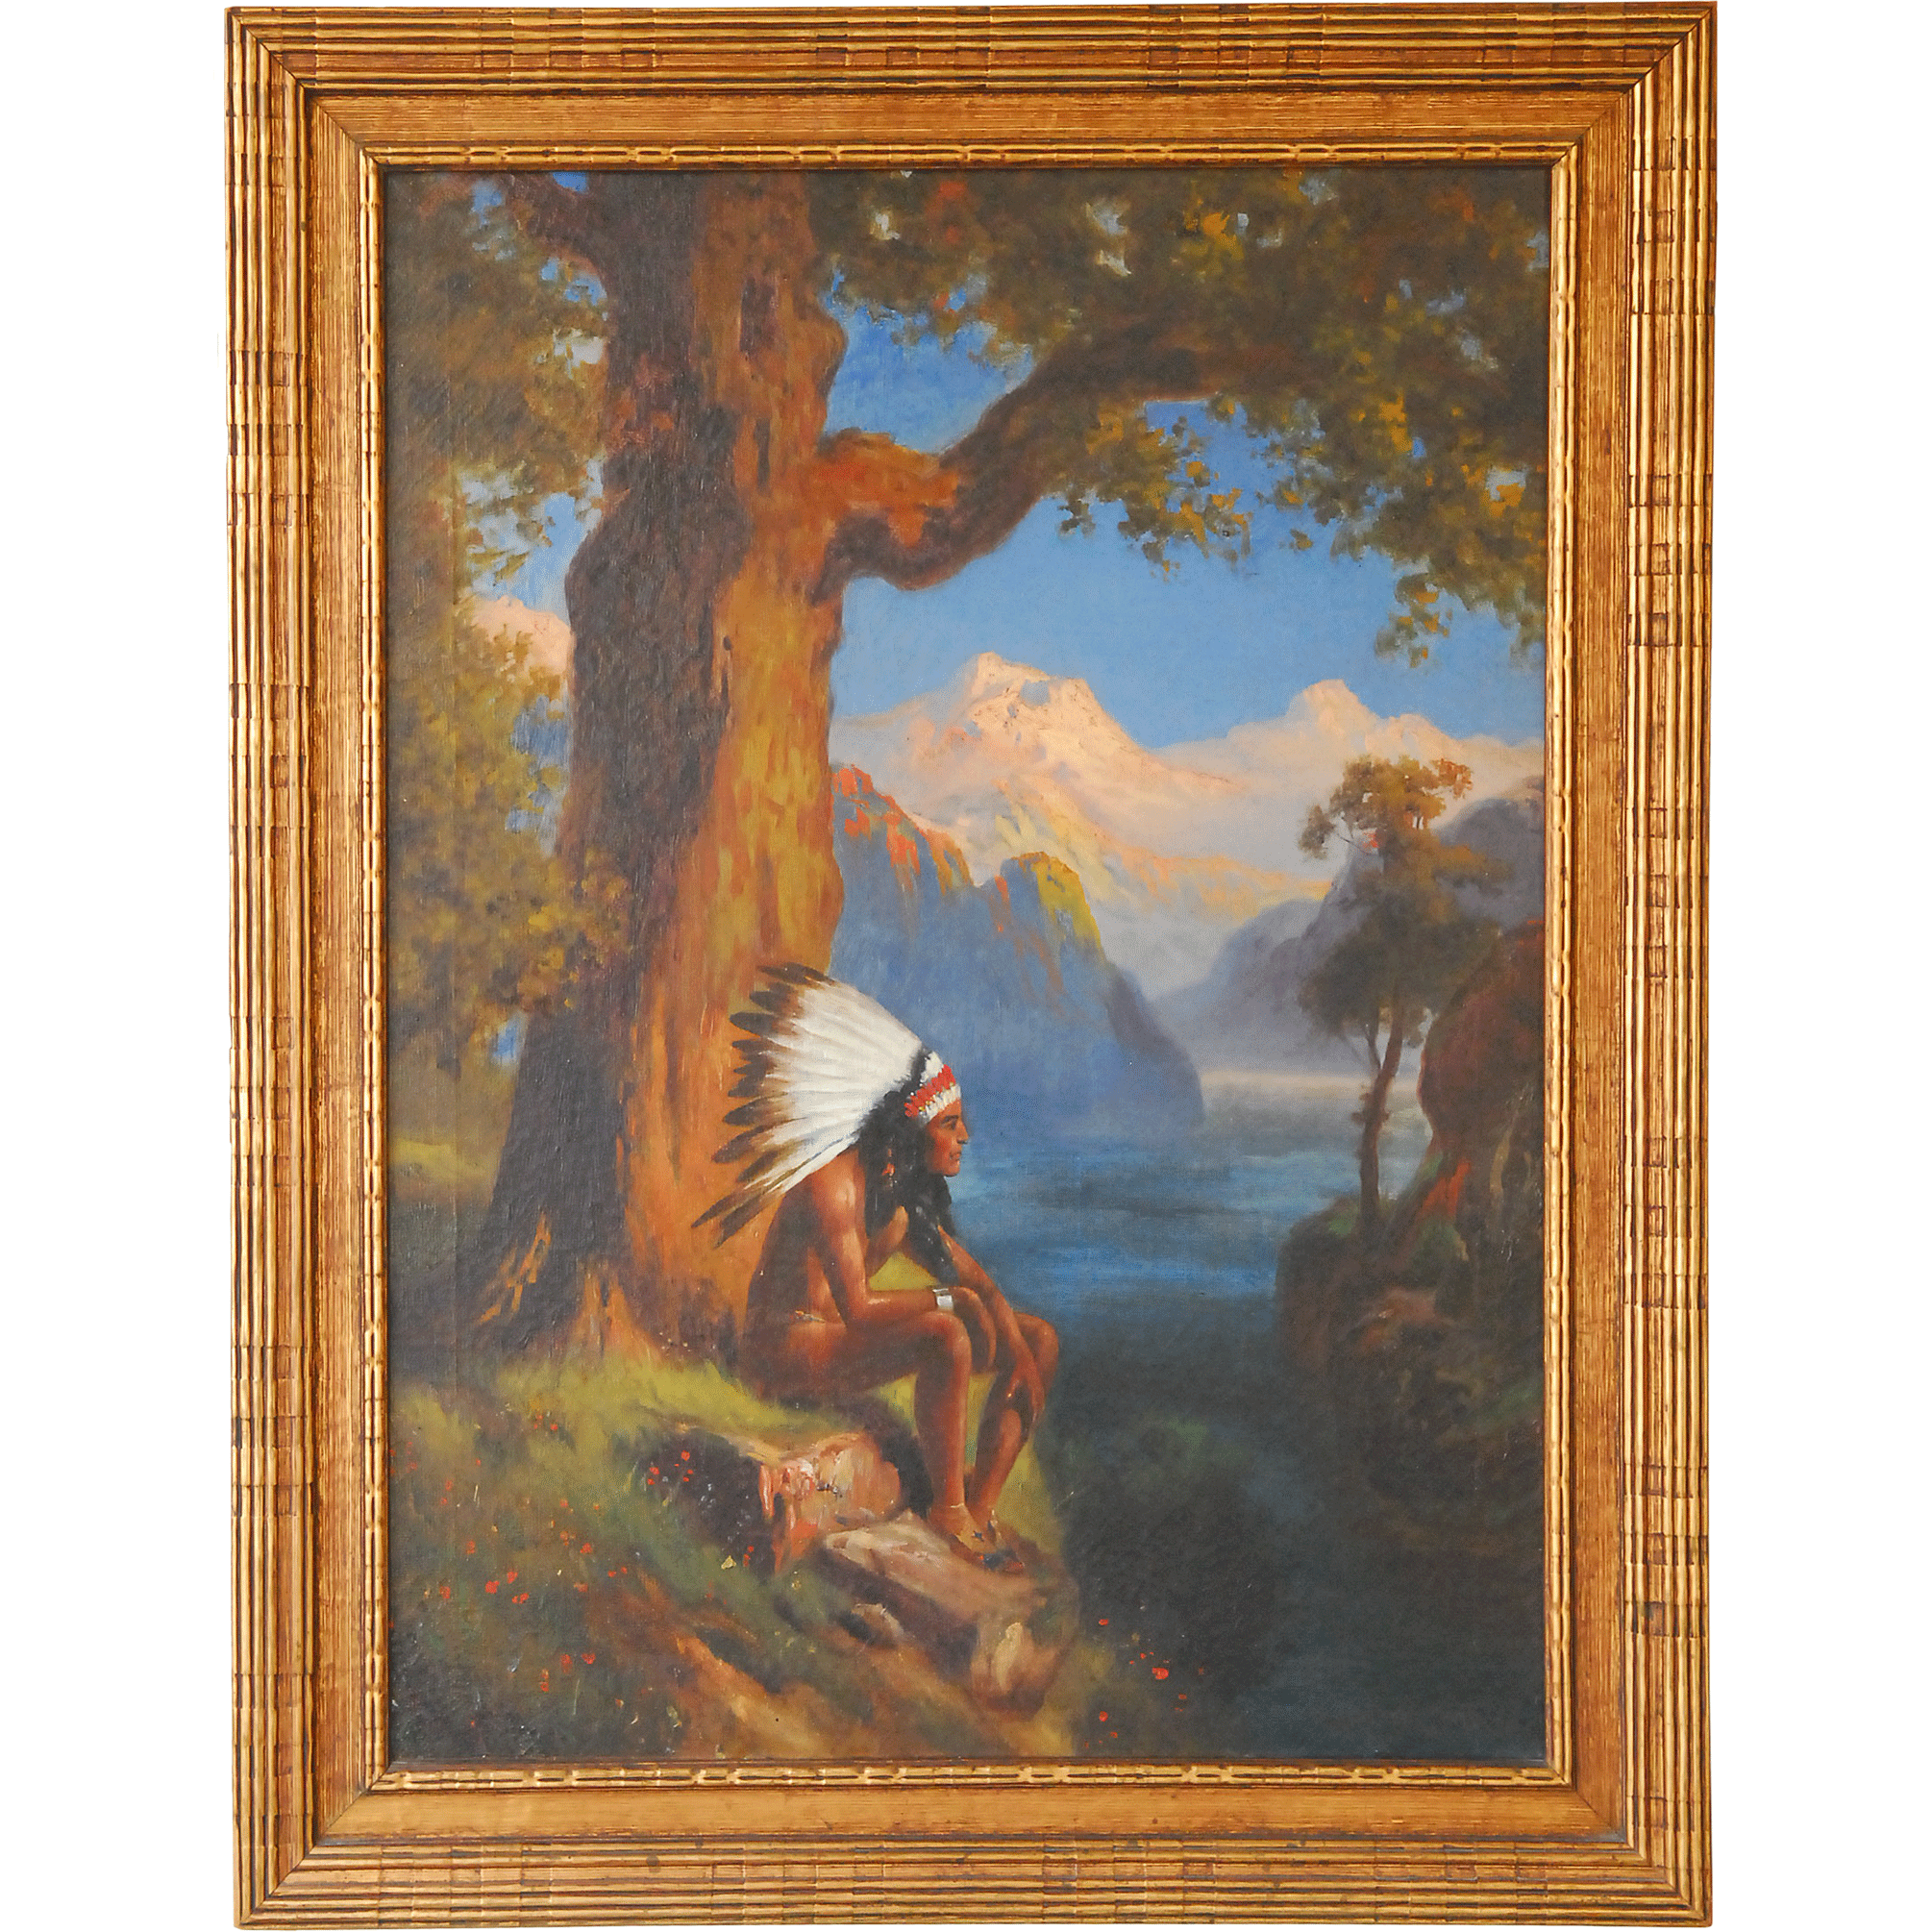 Child of Nature by Robert Atkinson Fox Oil on Canvas